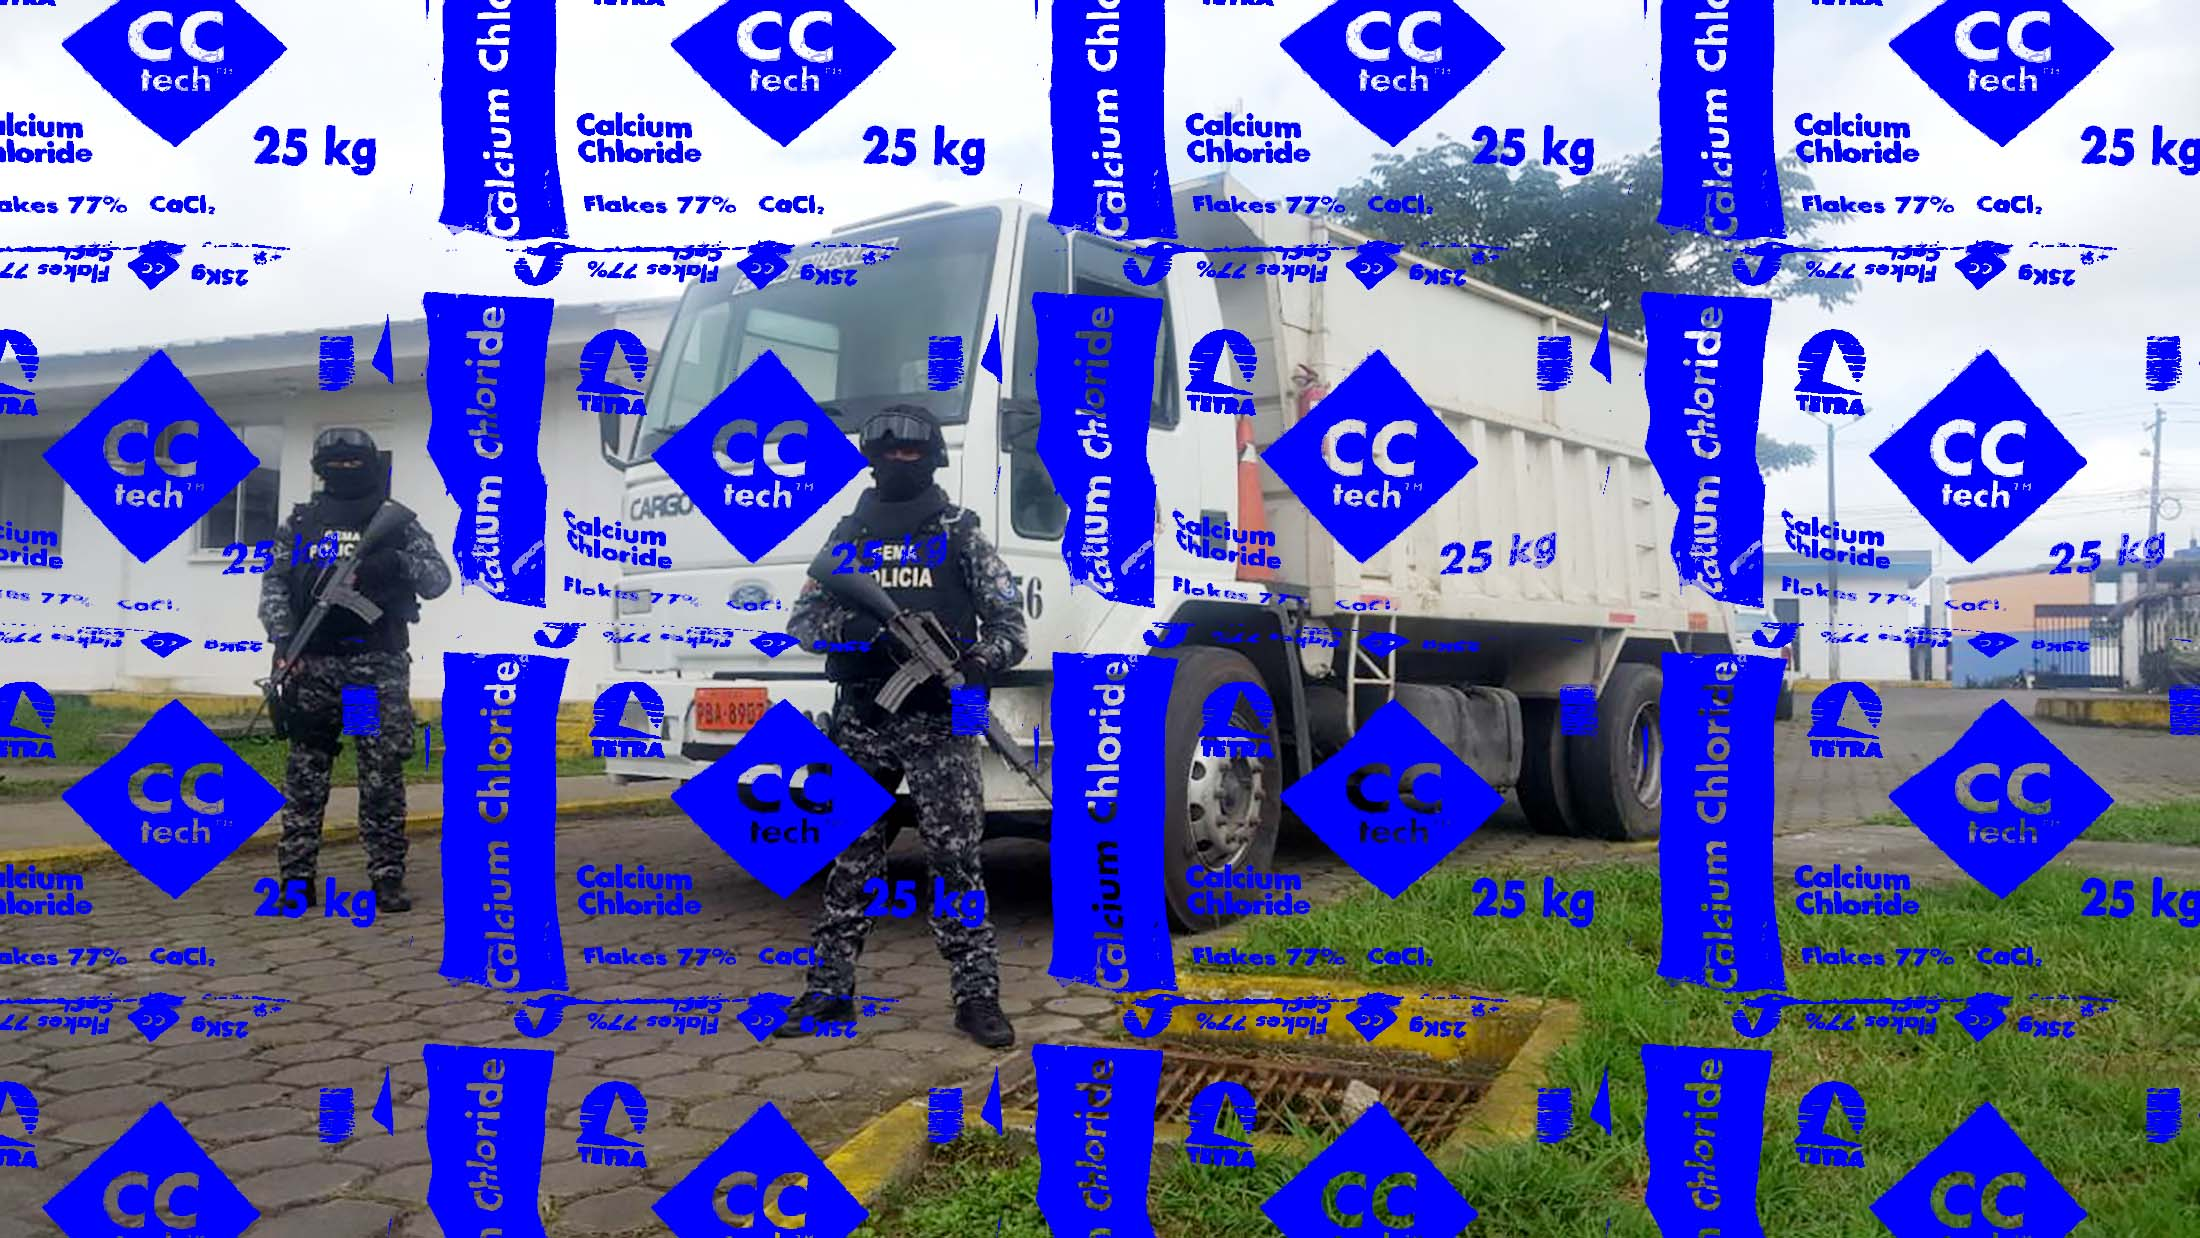 Tetra S Tti Calcium Chloride Is Fueling A Cocaine War In South America Bloomberg